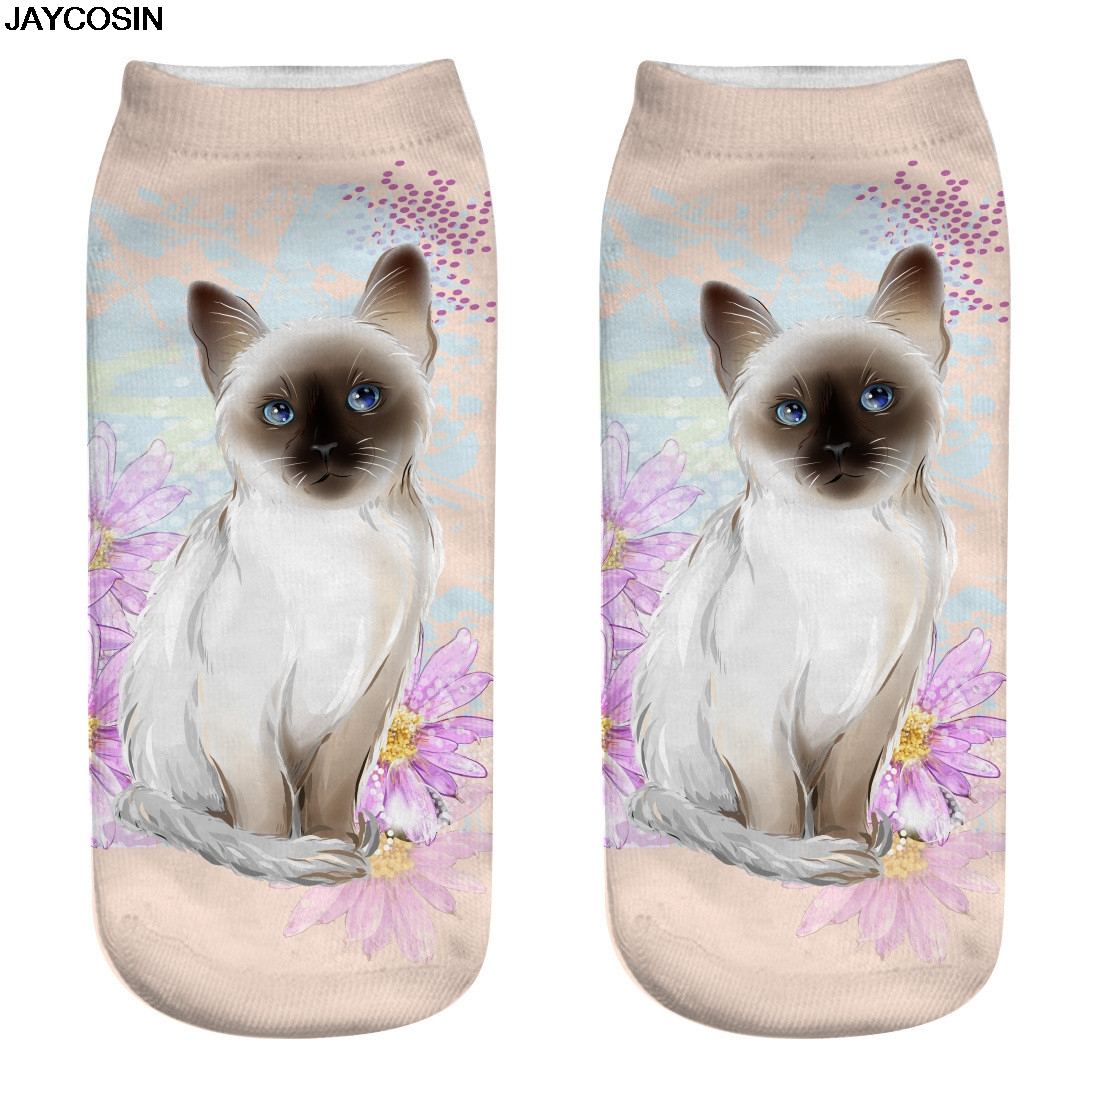 JACOSIN new fashion Cotton Socks Cat Printed Crew Socks 3D Sublimated Elastic Novelty Crazy Cool Sock For Gifts female 20190312